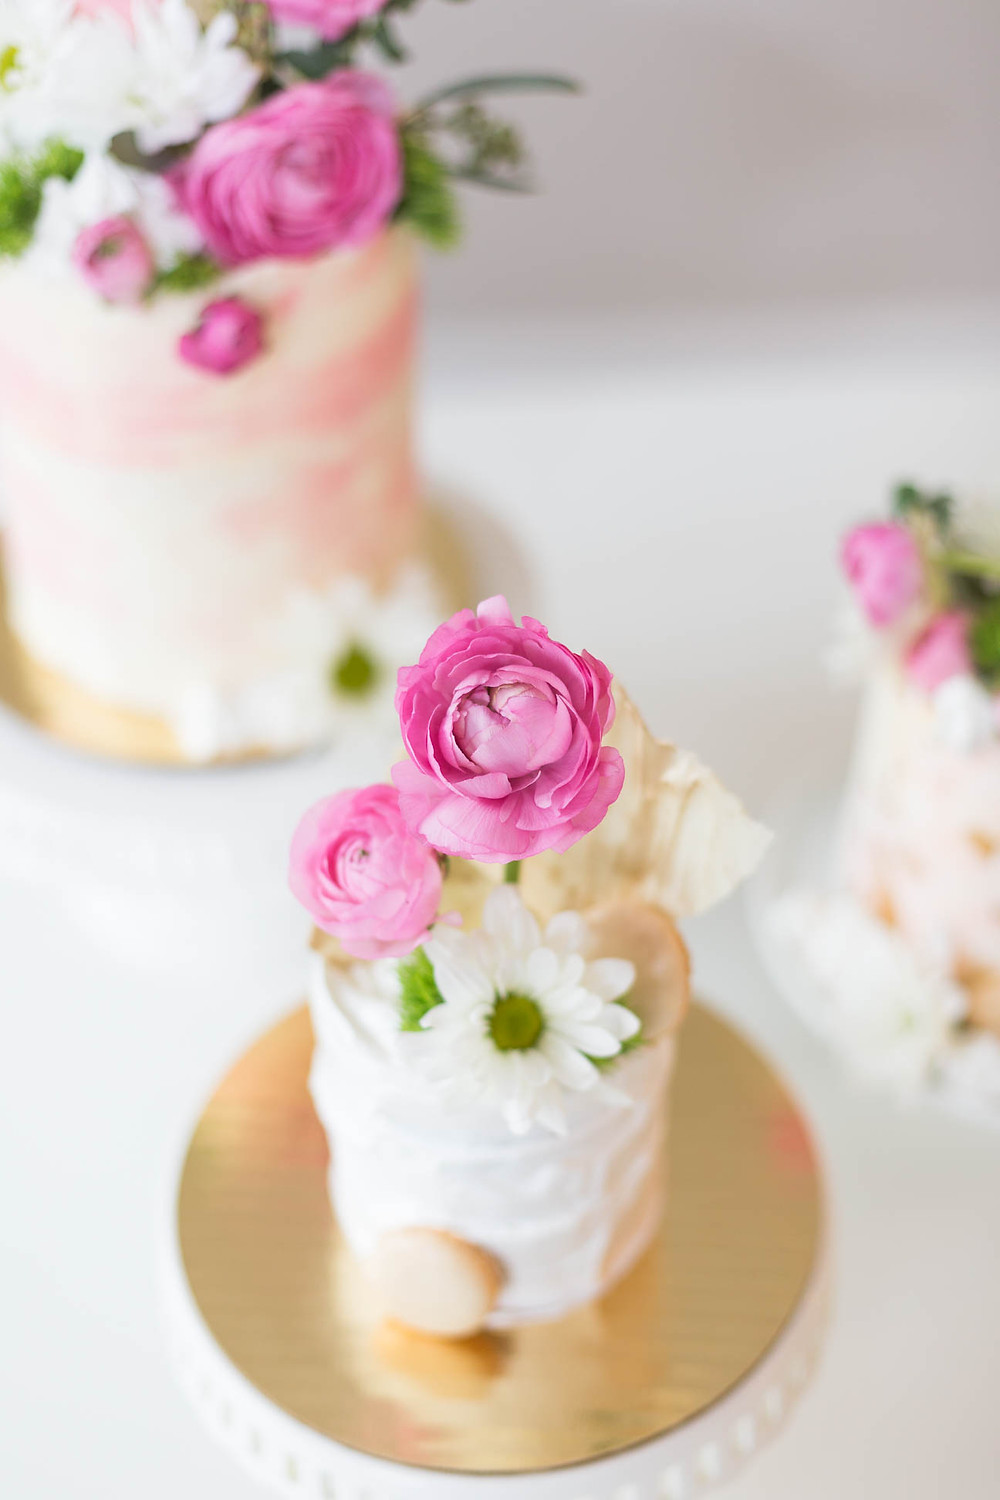 three mini wedding cakes decorated with pink ranunculus and with chocolate, cake decorating